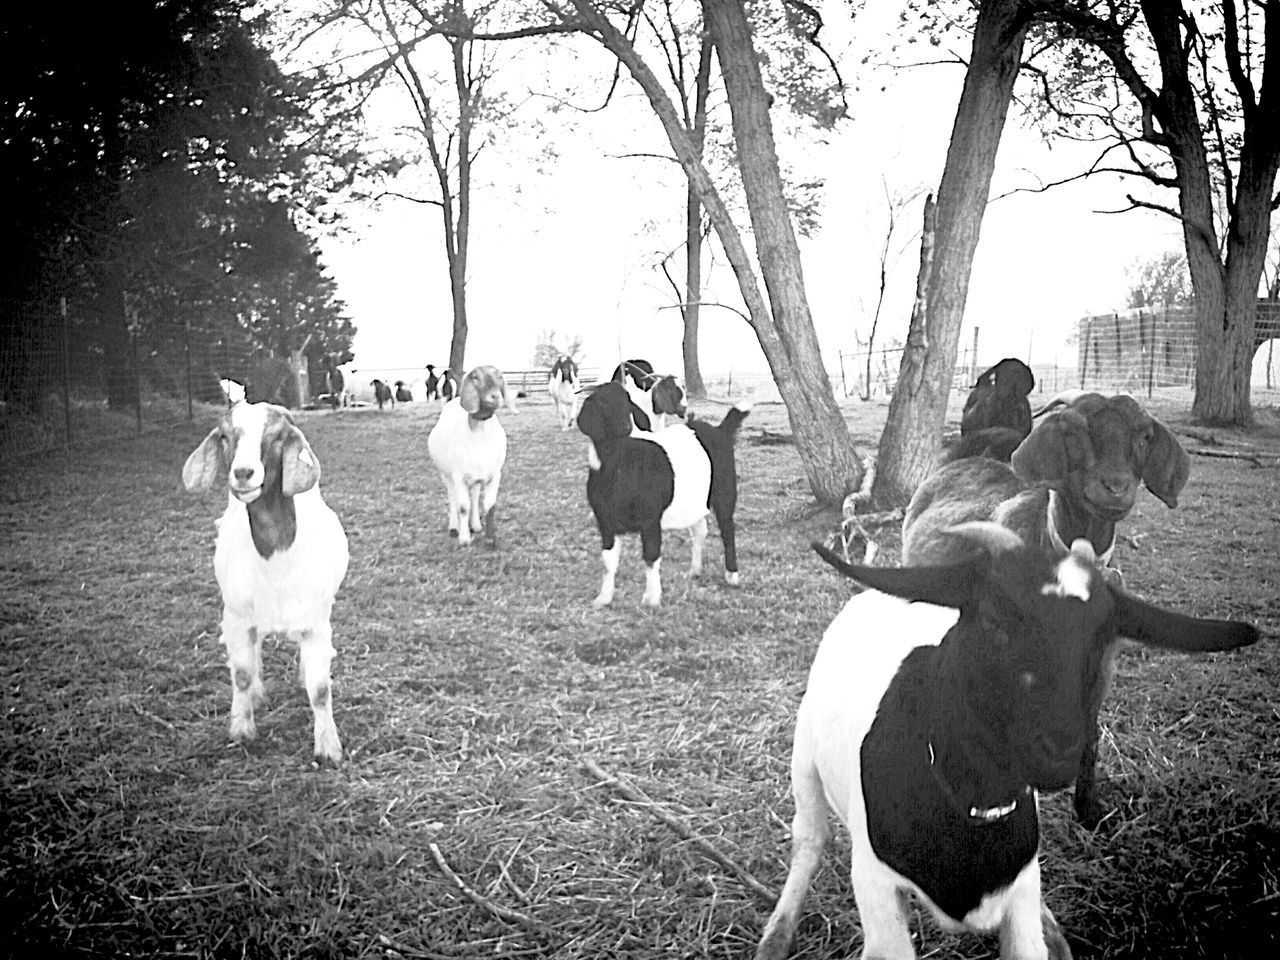 Shades Of Grey Showing Imperfection Animal Photography Boer Goat Capture The Moment Goat Life